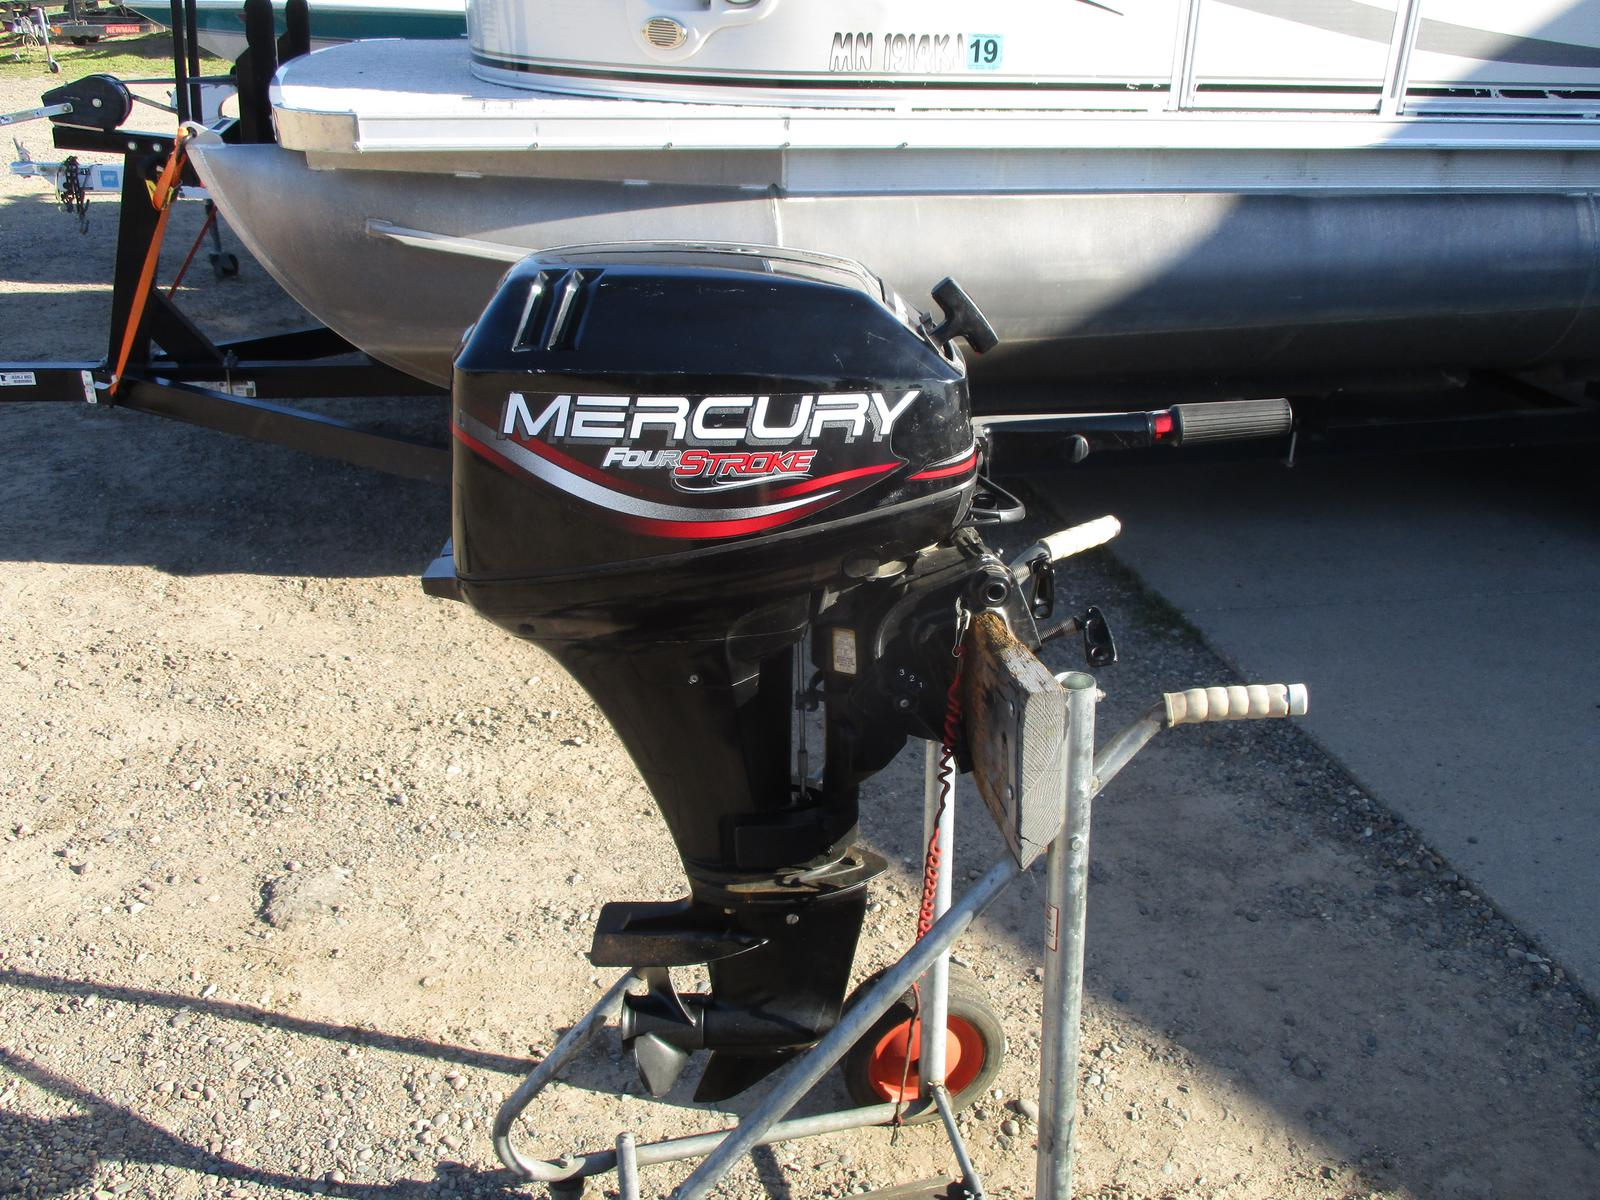 In Stock New And Used Models For Sale In Elk River Mn Riverview Sports Marine Elk River Mn 763 441 1799